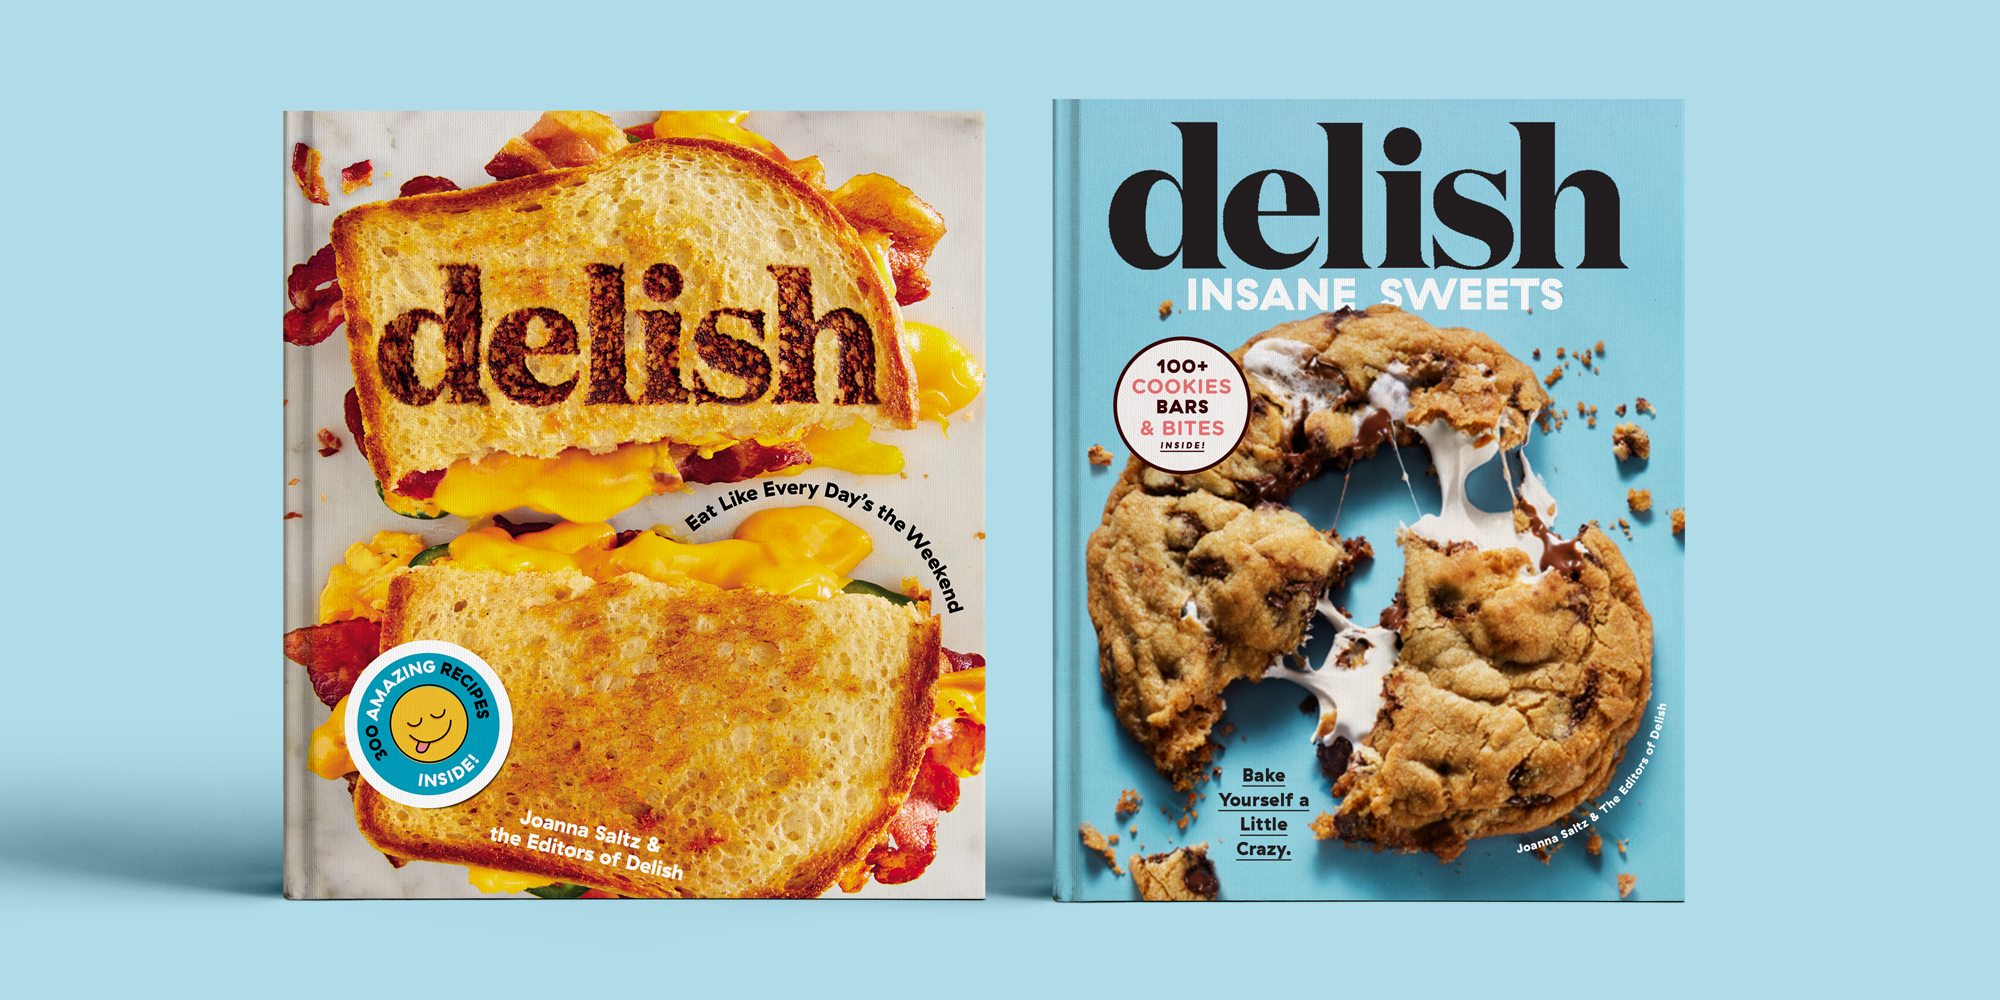 Buy Both Delish Cookbooks And Get A Third Book Free Today Only